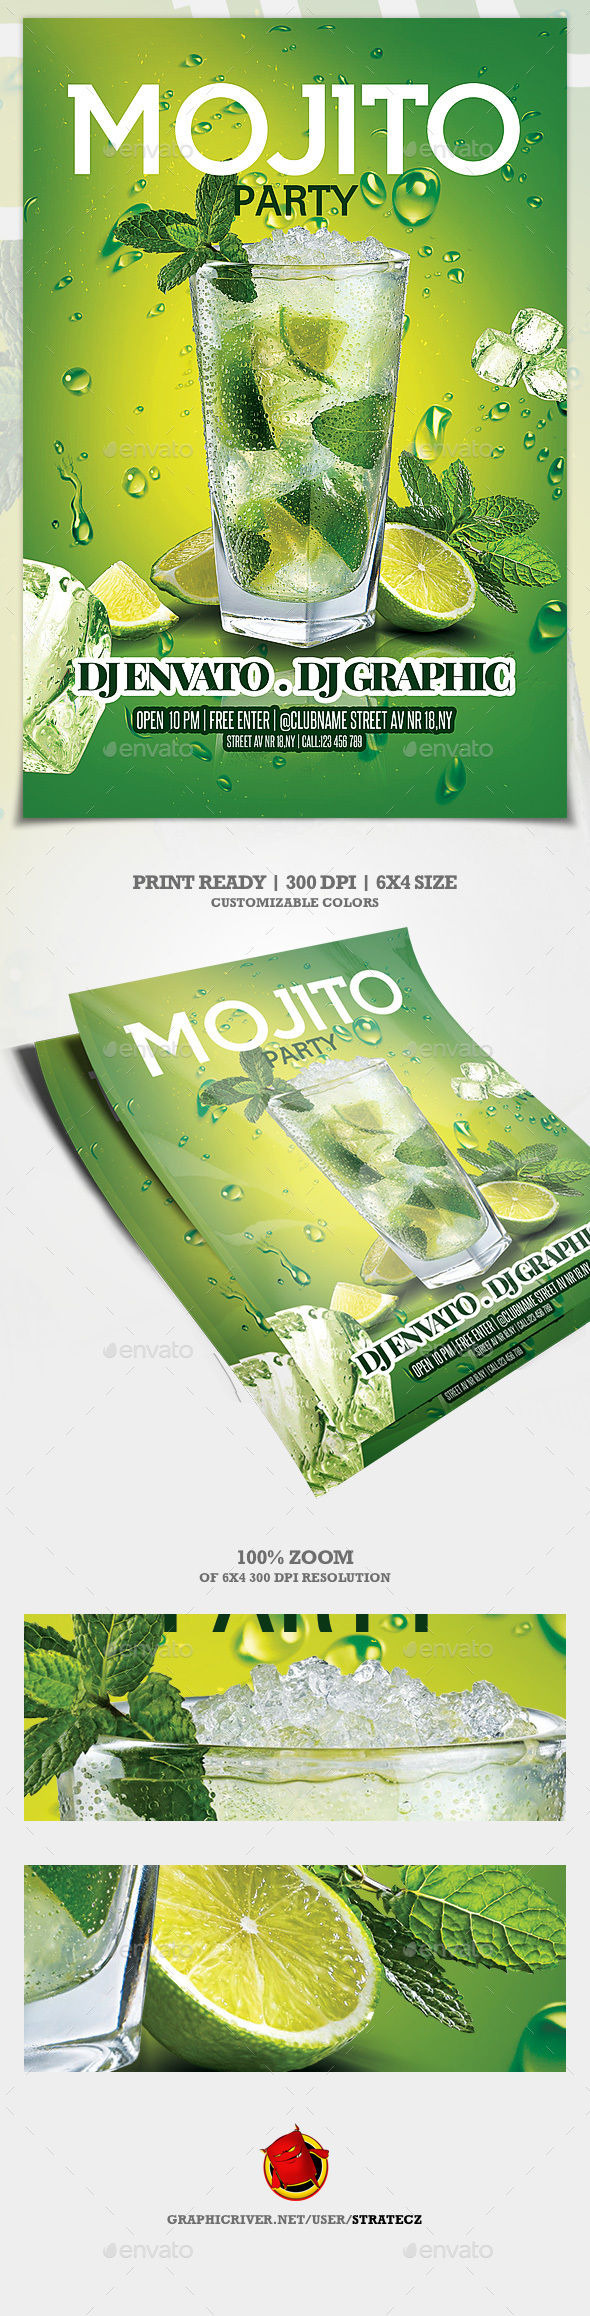 Mojito Night Flyer - Events Flyers